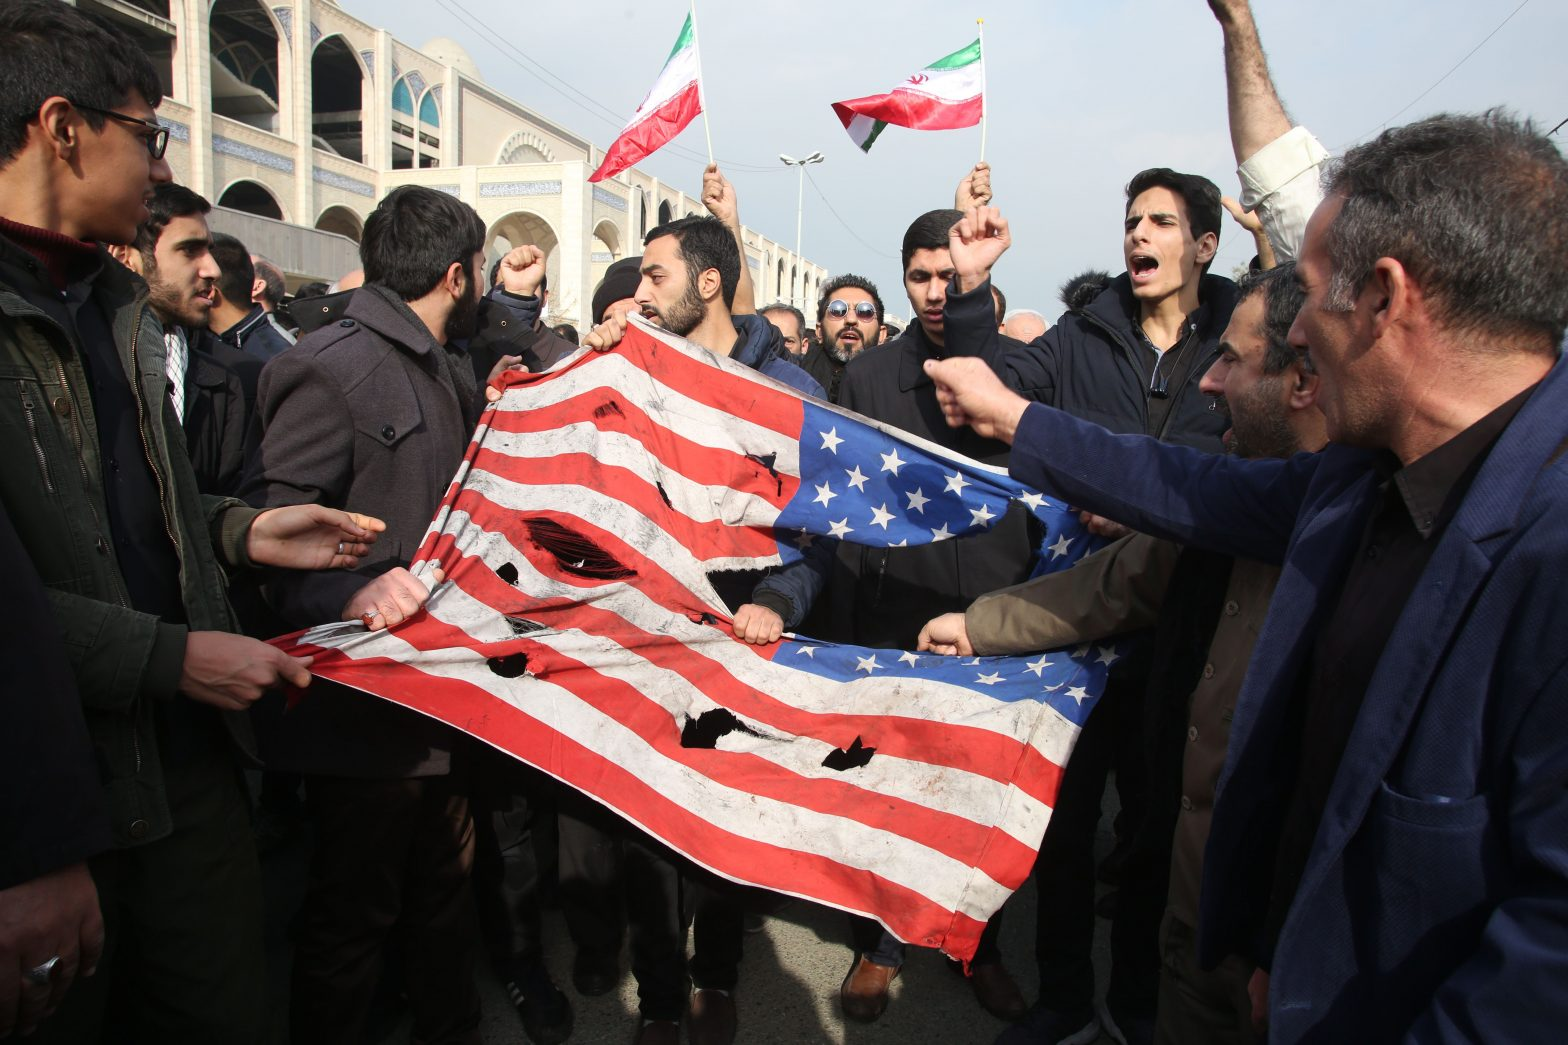 Stock Market Live Updates: Markets pinned in the red after Fed minutes: Iran still weighs – Yahoo Finance